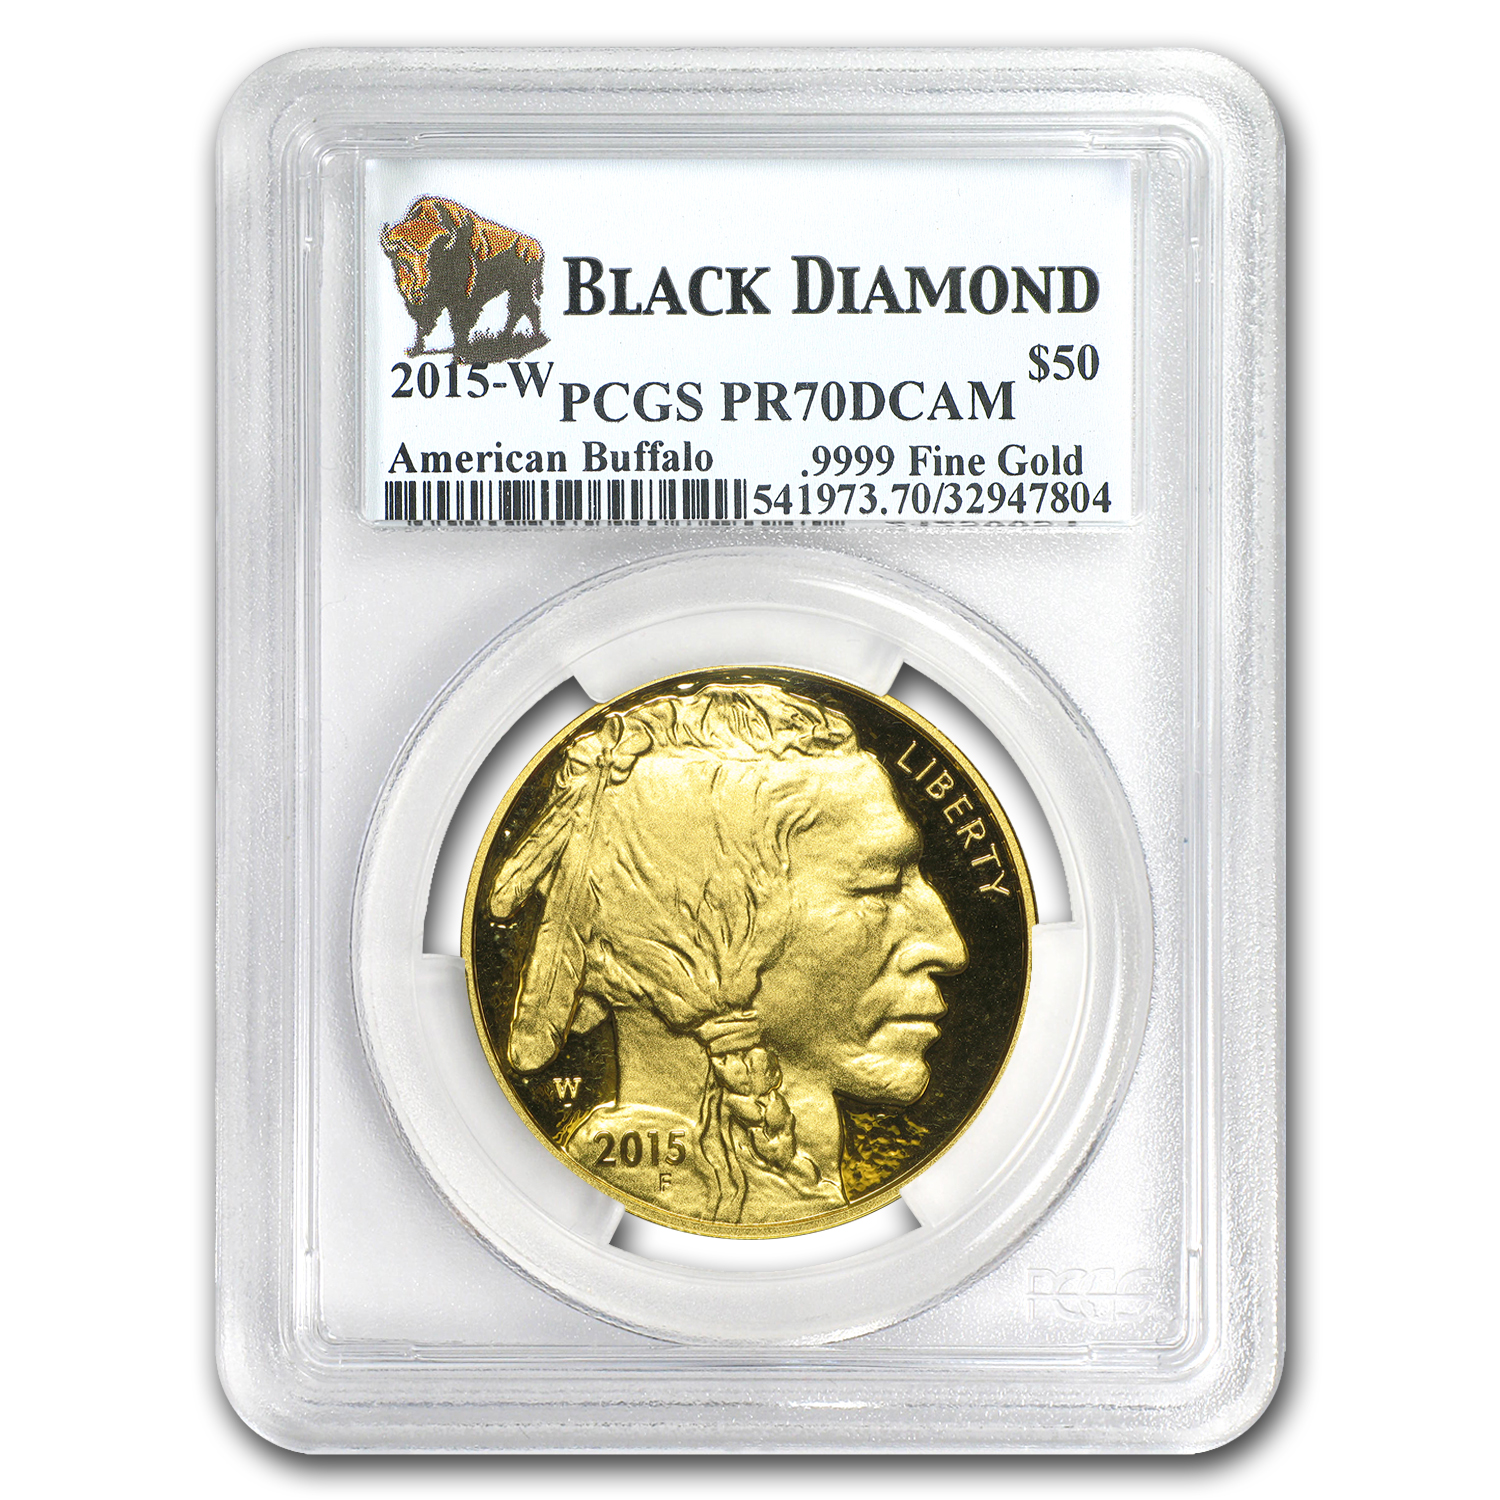 2015-W 1 oz Proof Gold Buffalo PR-70 PCGS (Black Diamond)